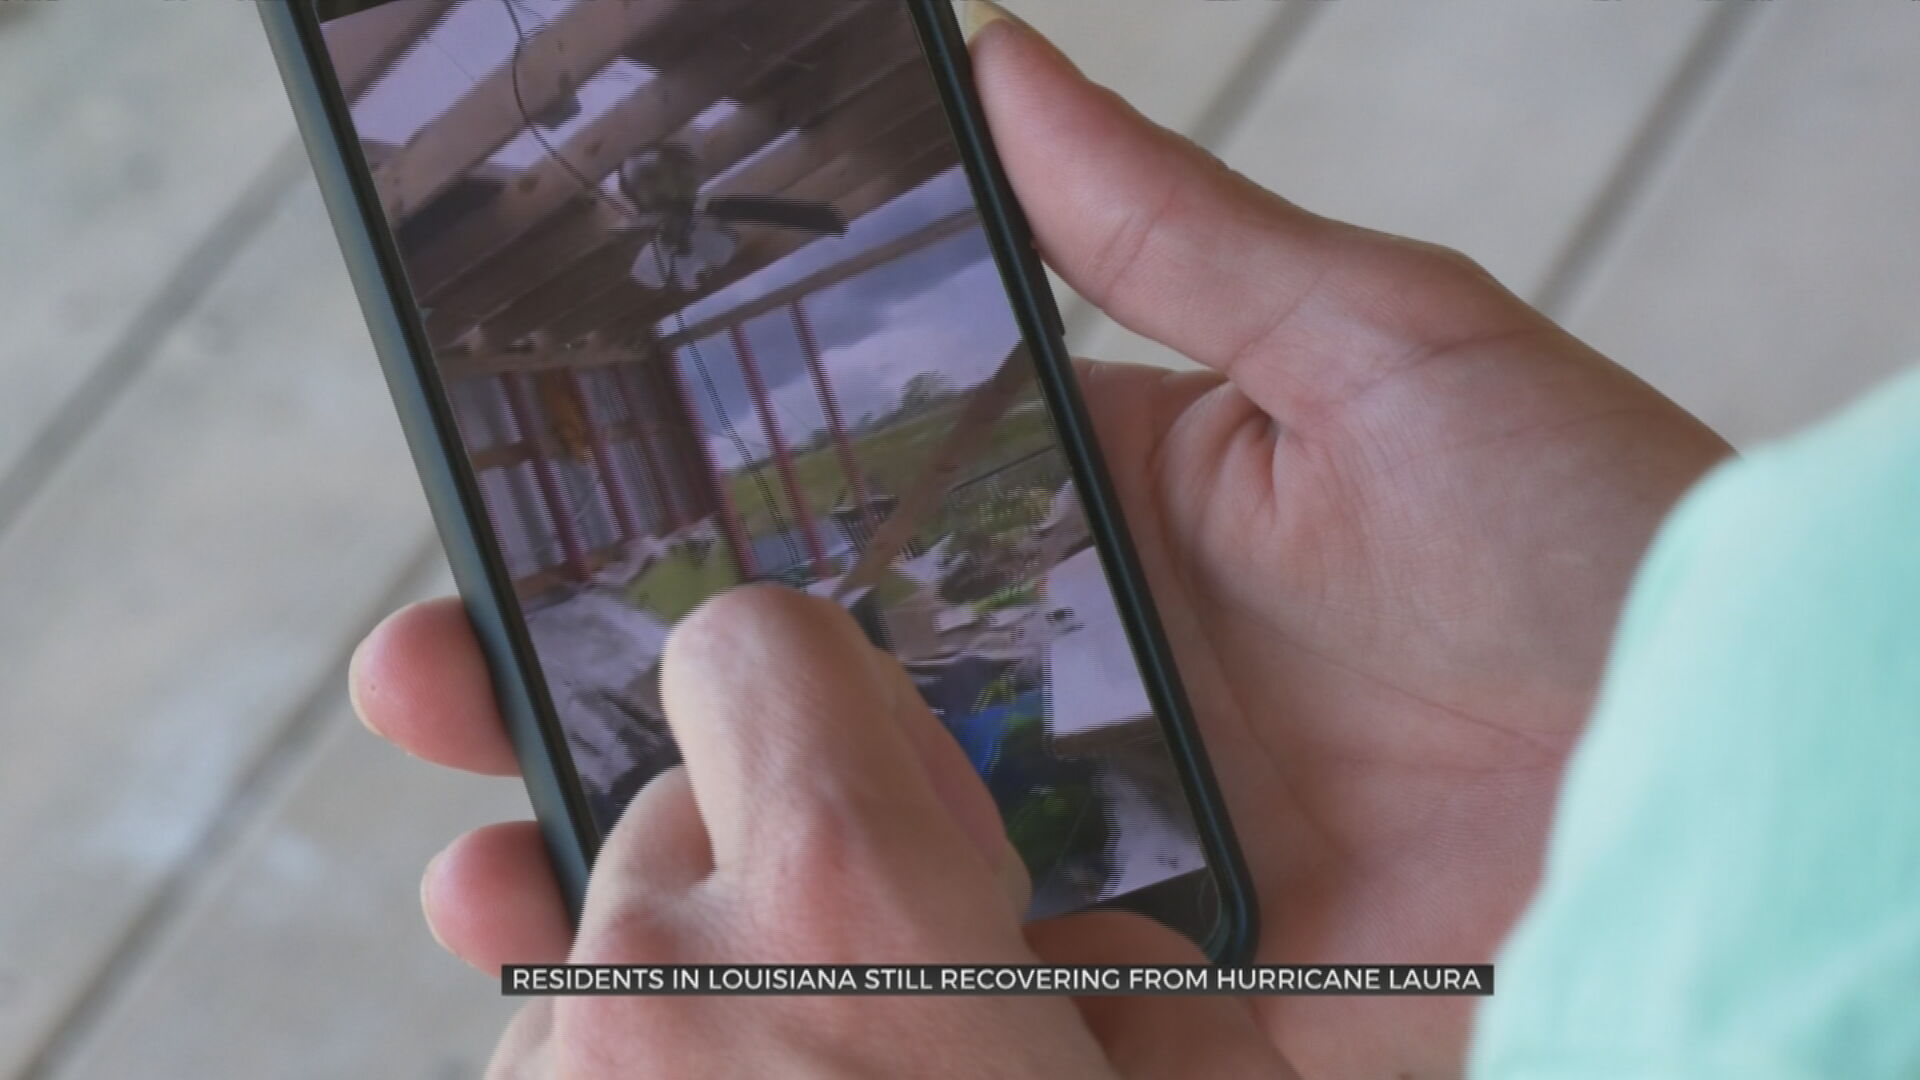 Louisiana Resident Says Town Is Unrecognizable After Hurricane